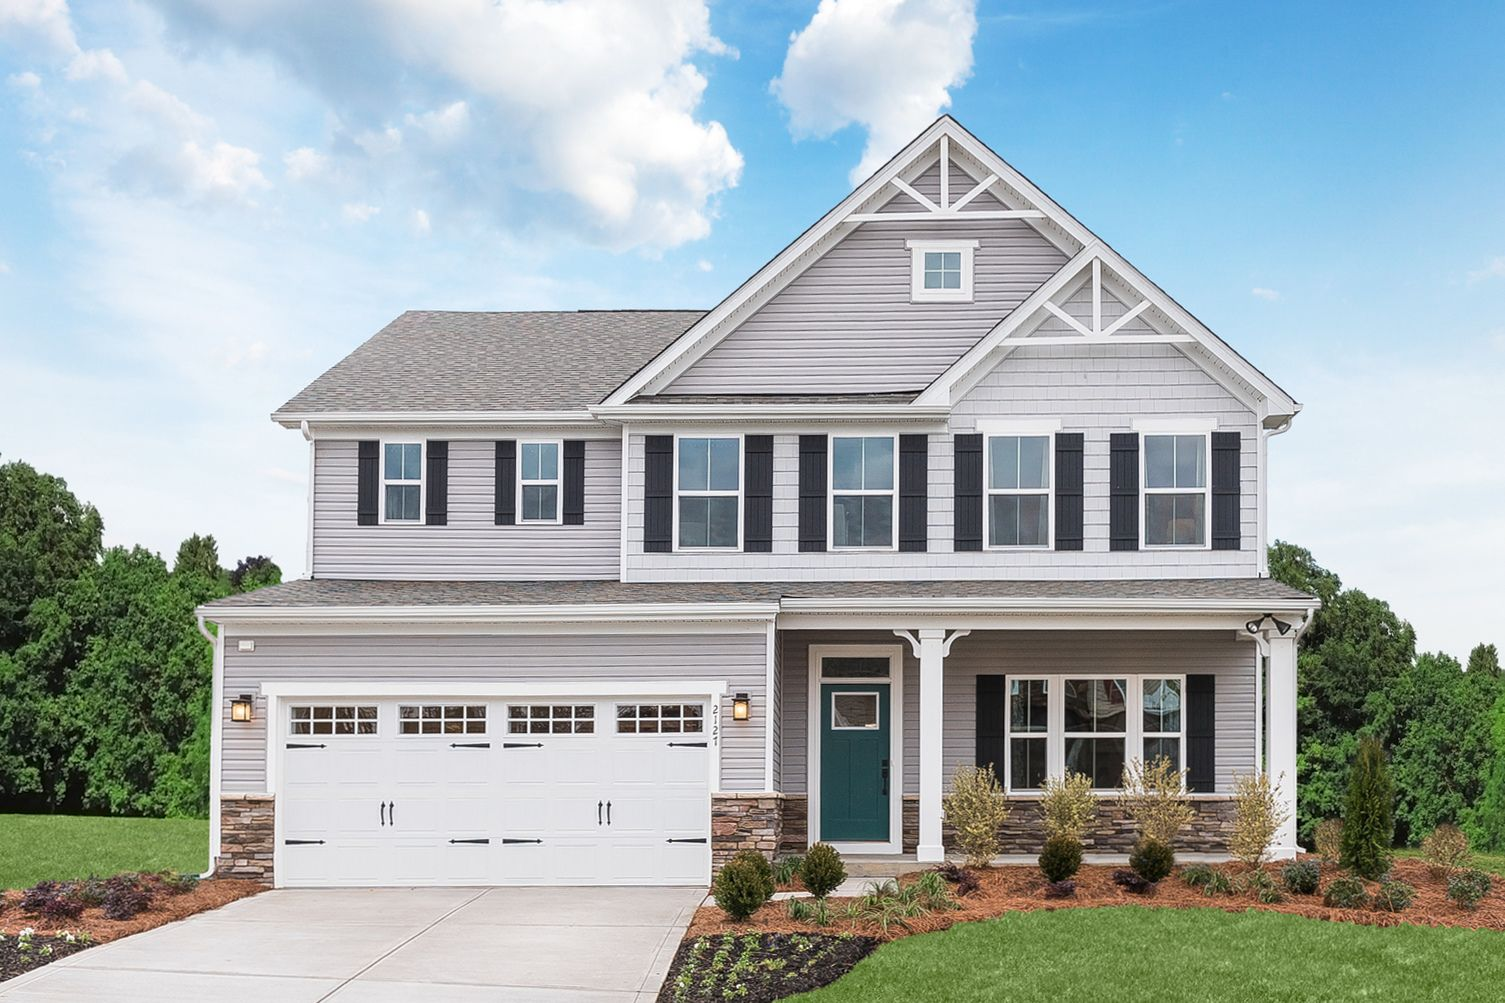 WELCOME HOME TO RIDGEWOOD GREENS:Mentor Schools! 2-story homes in a scenic community with open space views and walking trails. Convenient to I-90 & Rt 2.Click here to schedule your visit!